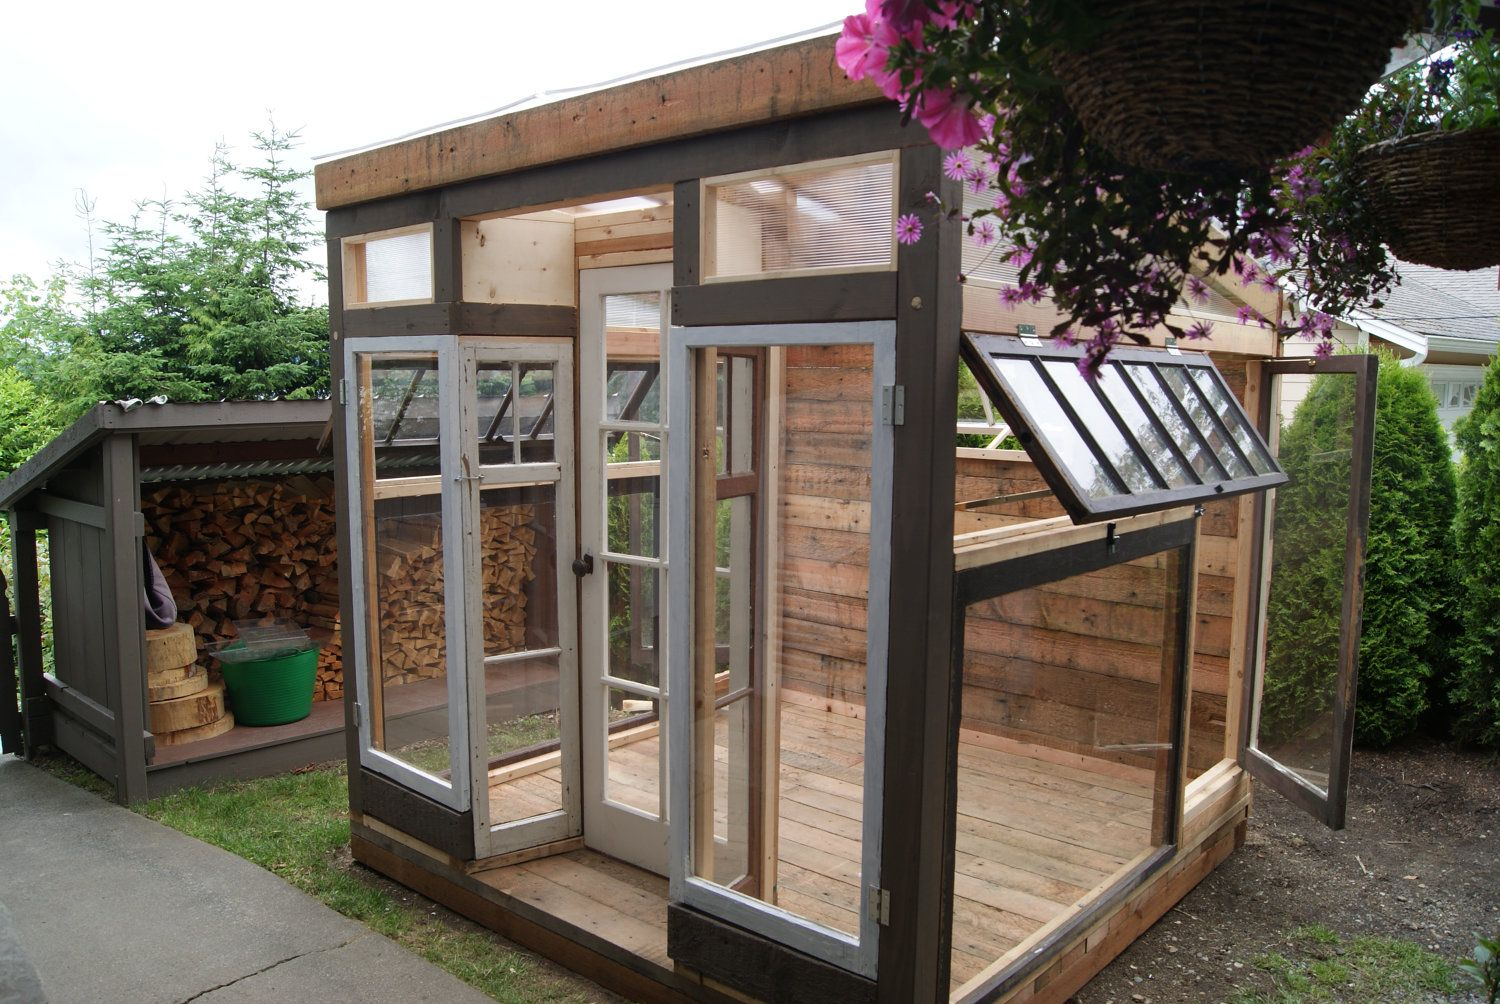 Old window ideas for outside  a custom greenhouse with reclaimed windows it would be so fun to